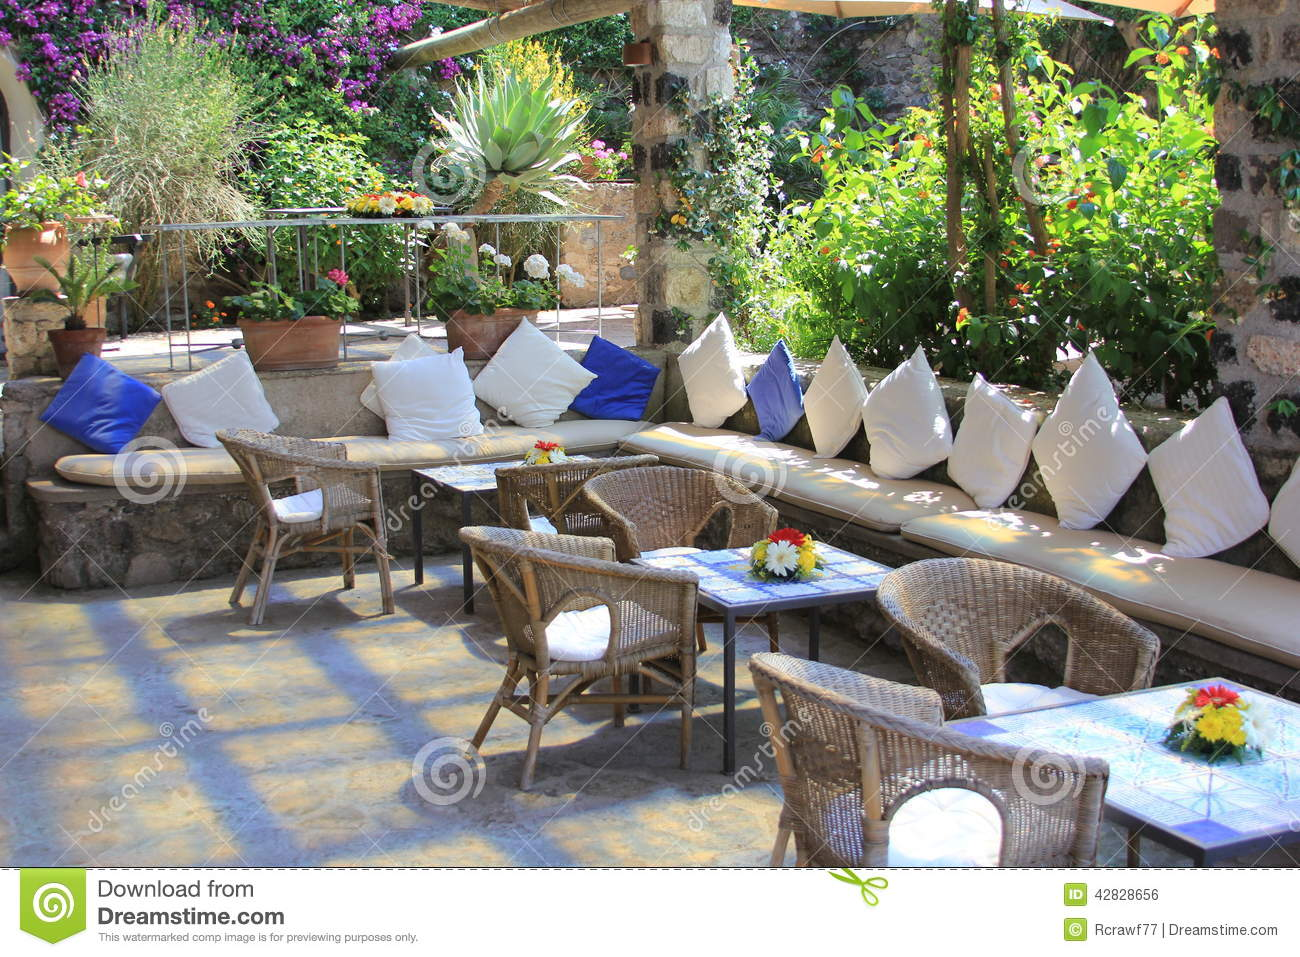 Outdoor Restaurant Cafe Seating Arrangements Stock Photo  : outdoor restaurant cafe seating arrangements tables seats arranged 42828656 from dreamstime.com size 1300 x 957 jpeg 245kB